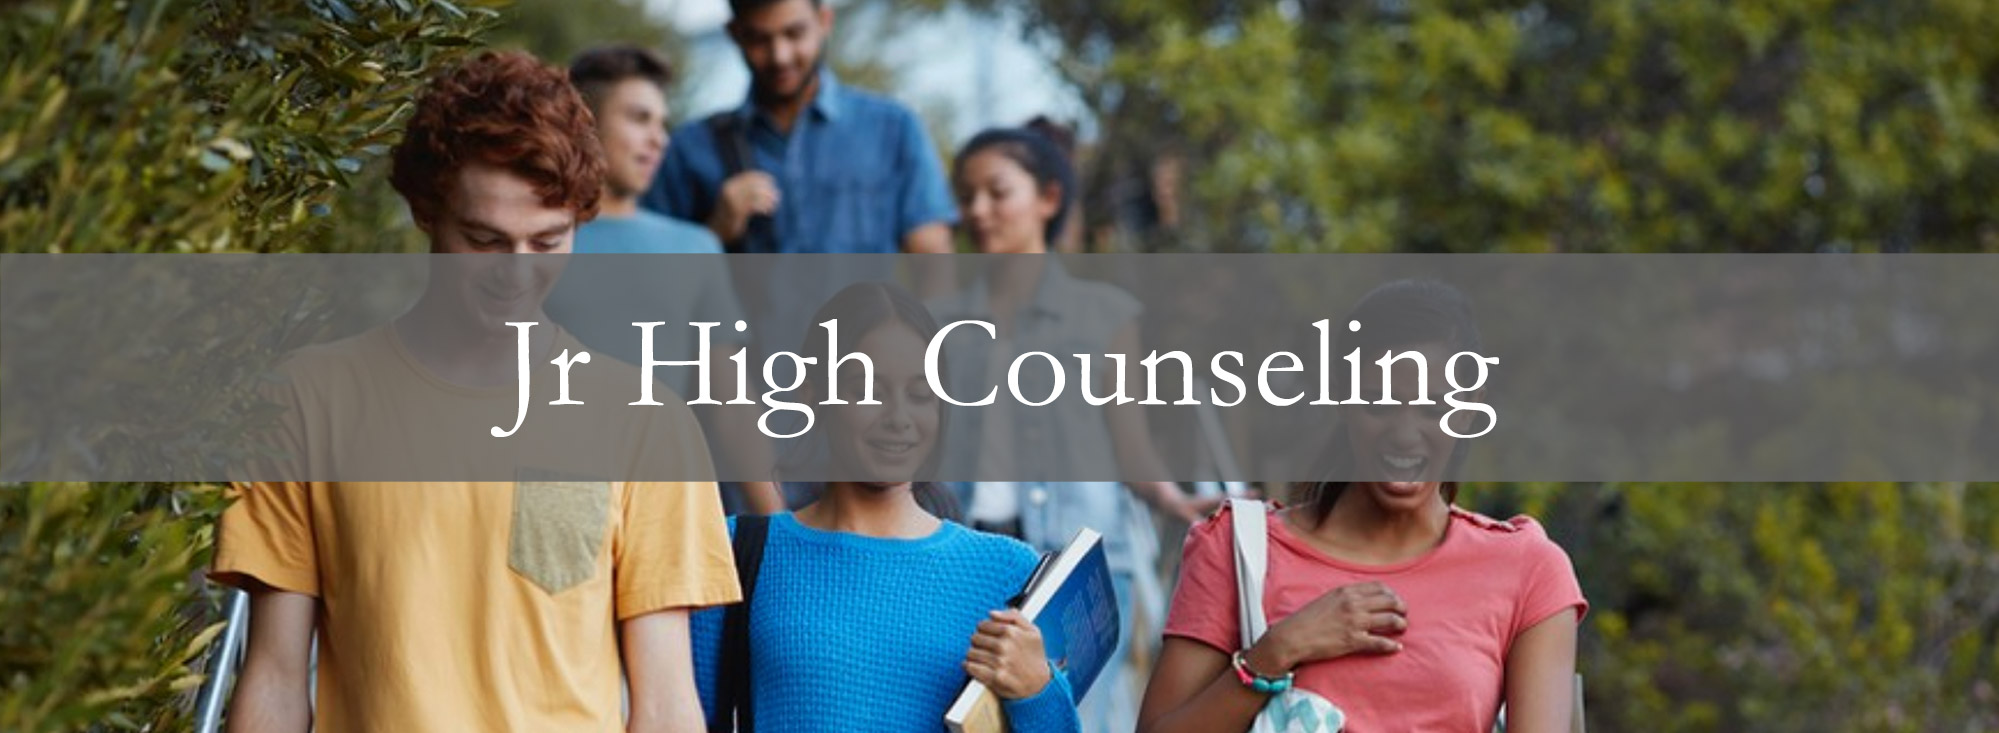 Jr. High Counseling